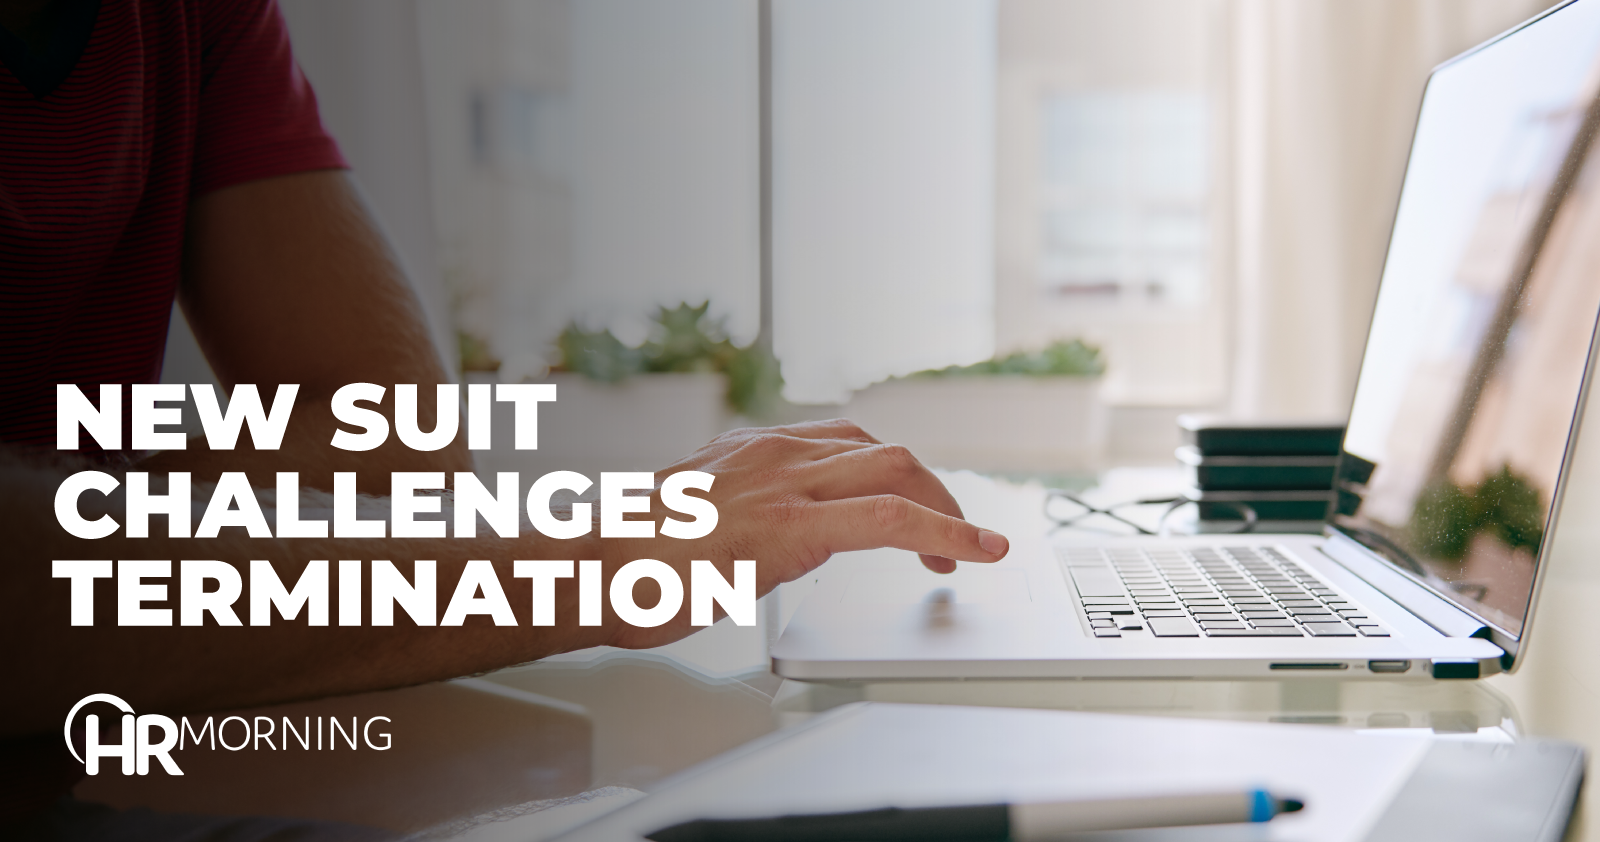 New Suit Challenges Termination